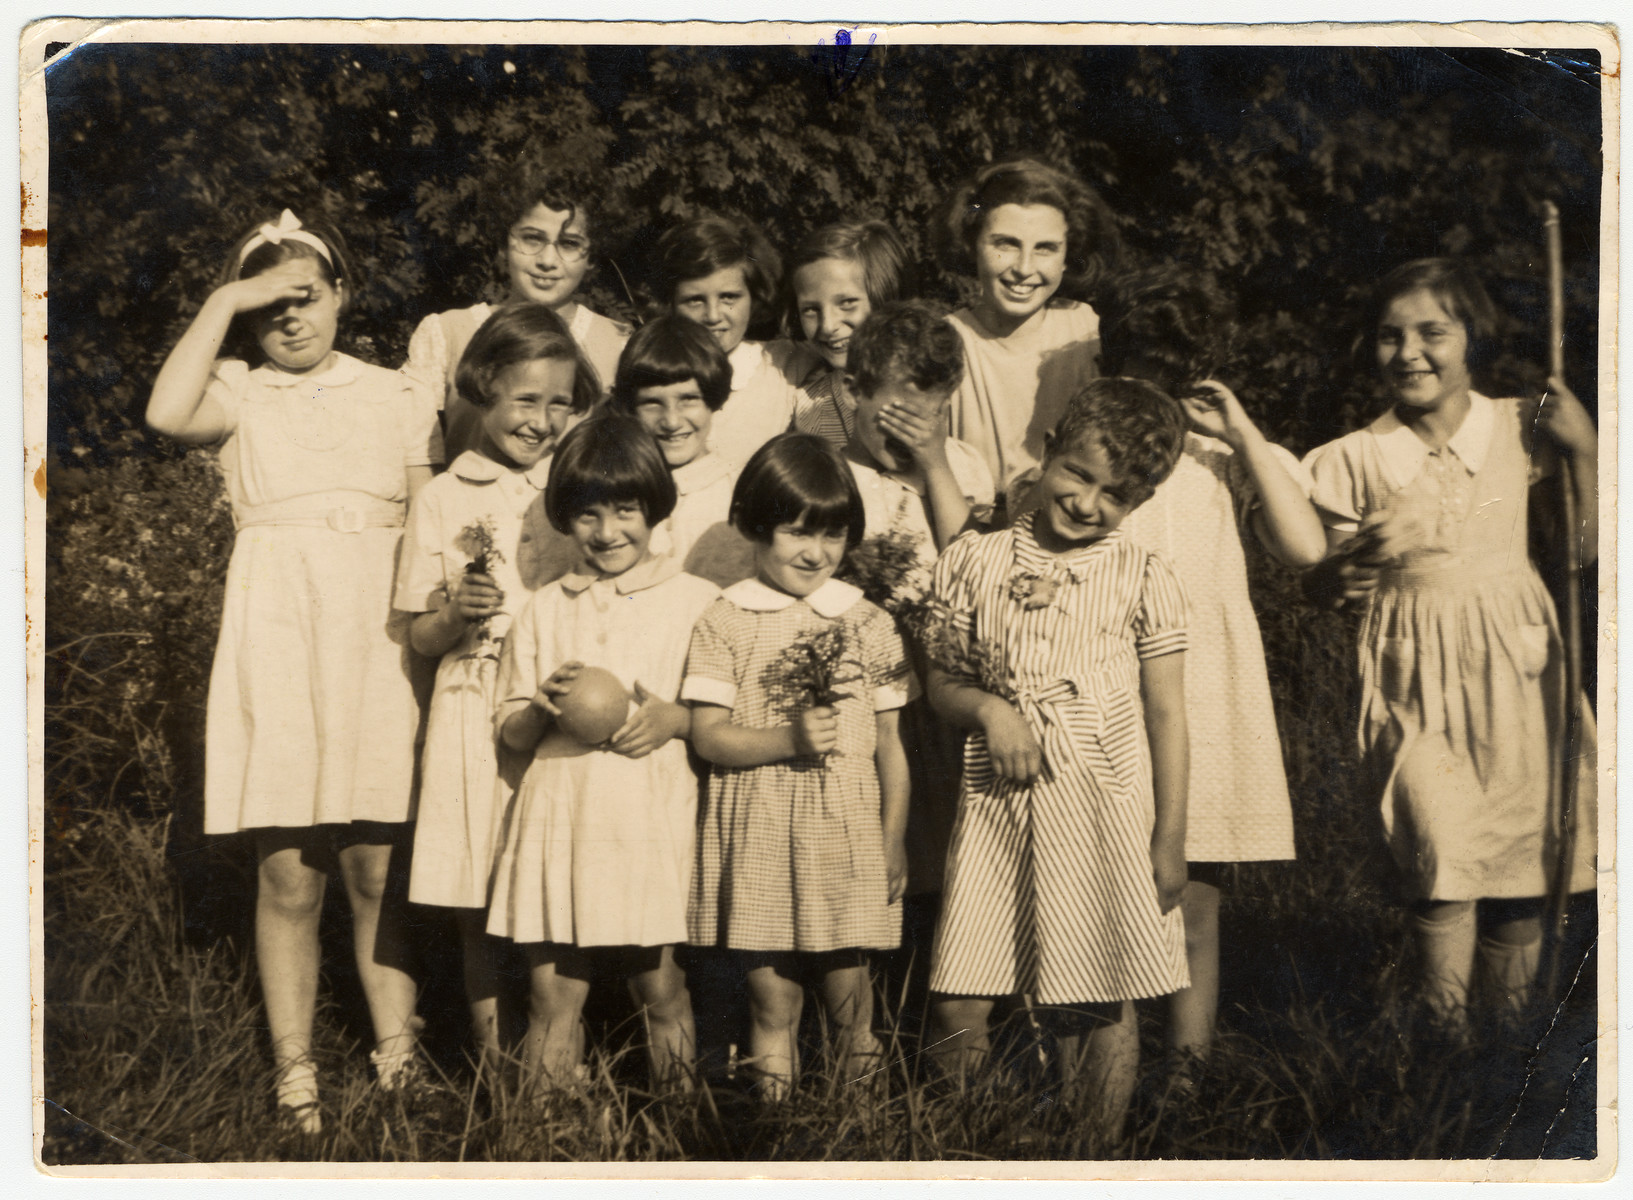 Group portrait of Jewish refugee girls who came to Great Britain on a Kindertransport.  Liesl Scherzer is pictured second from the right in the top row.